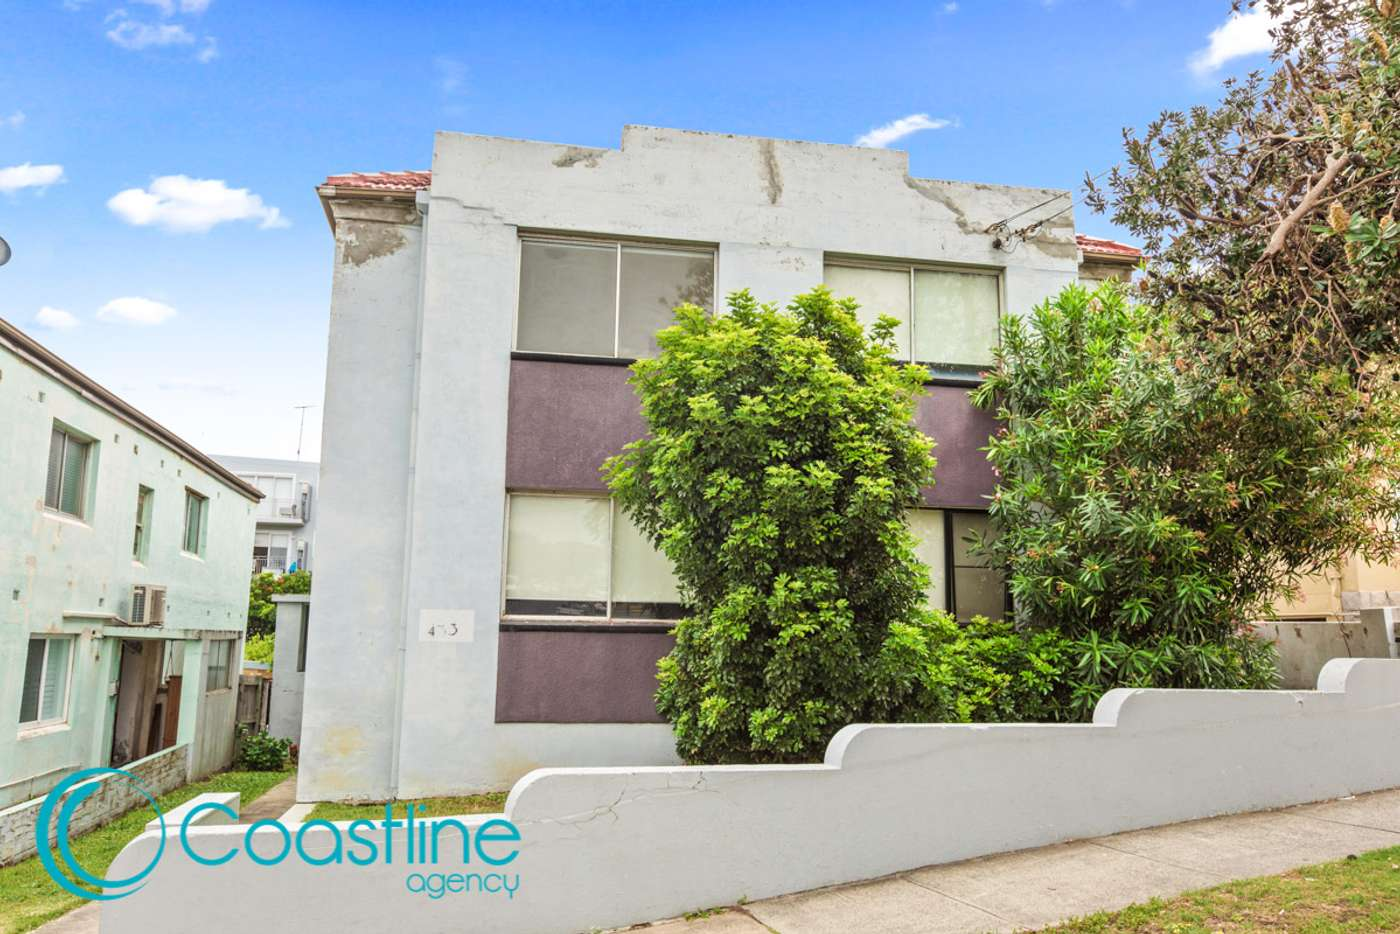 Main view of Homely apartment listing, 4/433 Maroubra Road, Maroubra NSW 2035